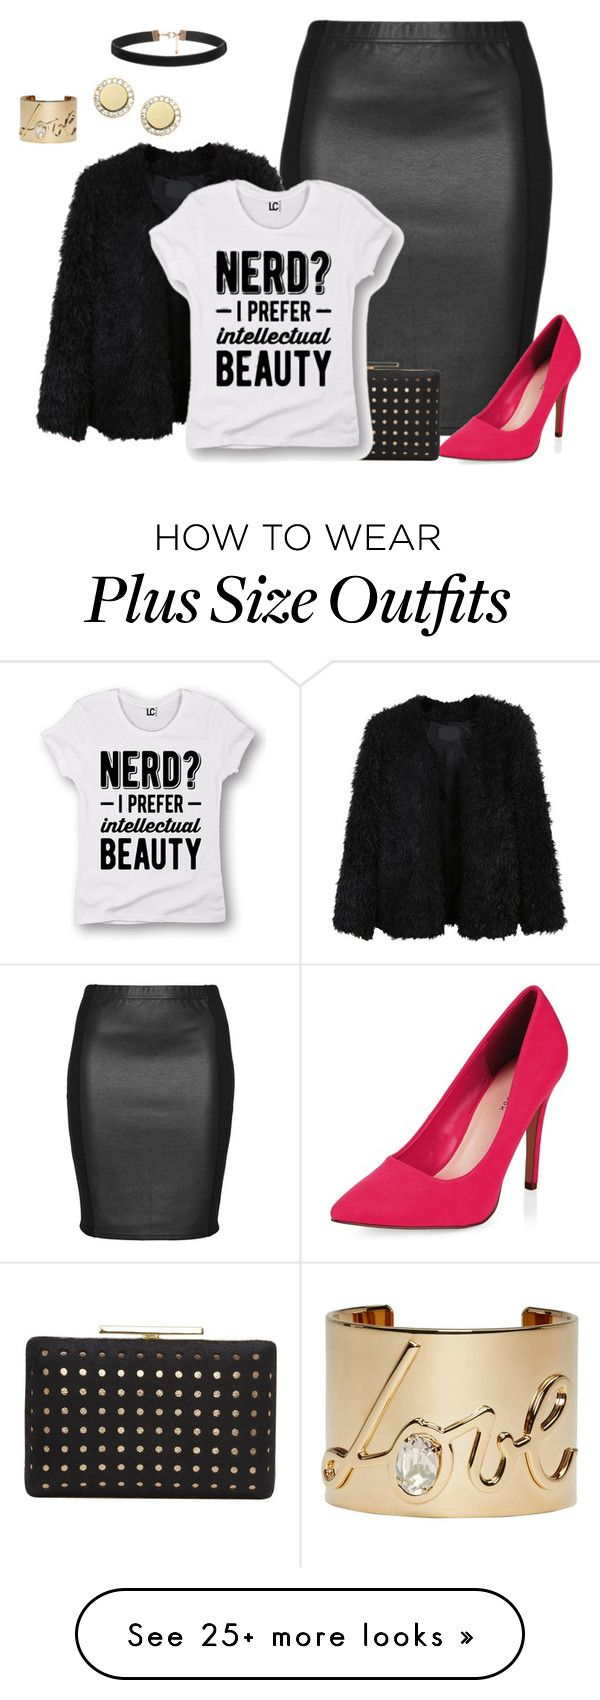 """""""plus size vday look4"""" by kristie-payne on Polyvore featuring Zhenzi, LE3NO, Vince Camuto, Lanvin, FOSSIL, women's clothing, women, female, woman and misses"""